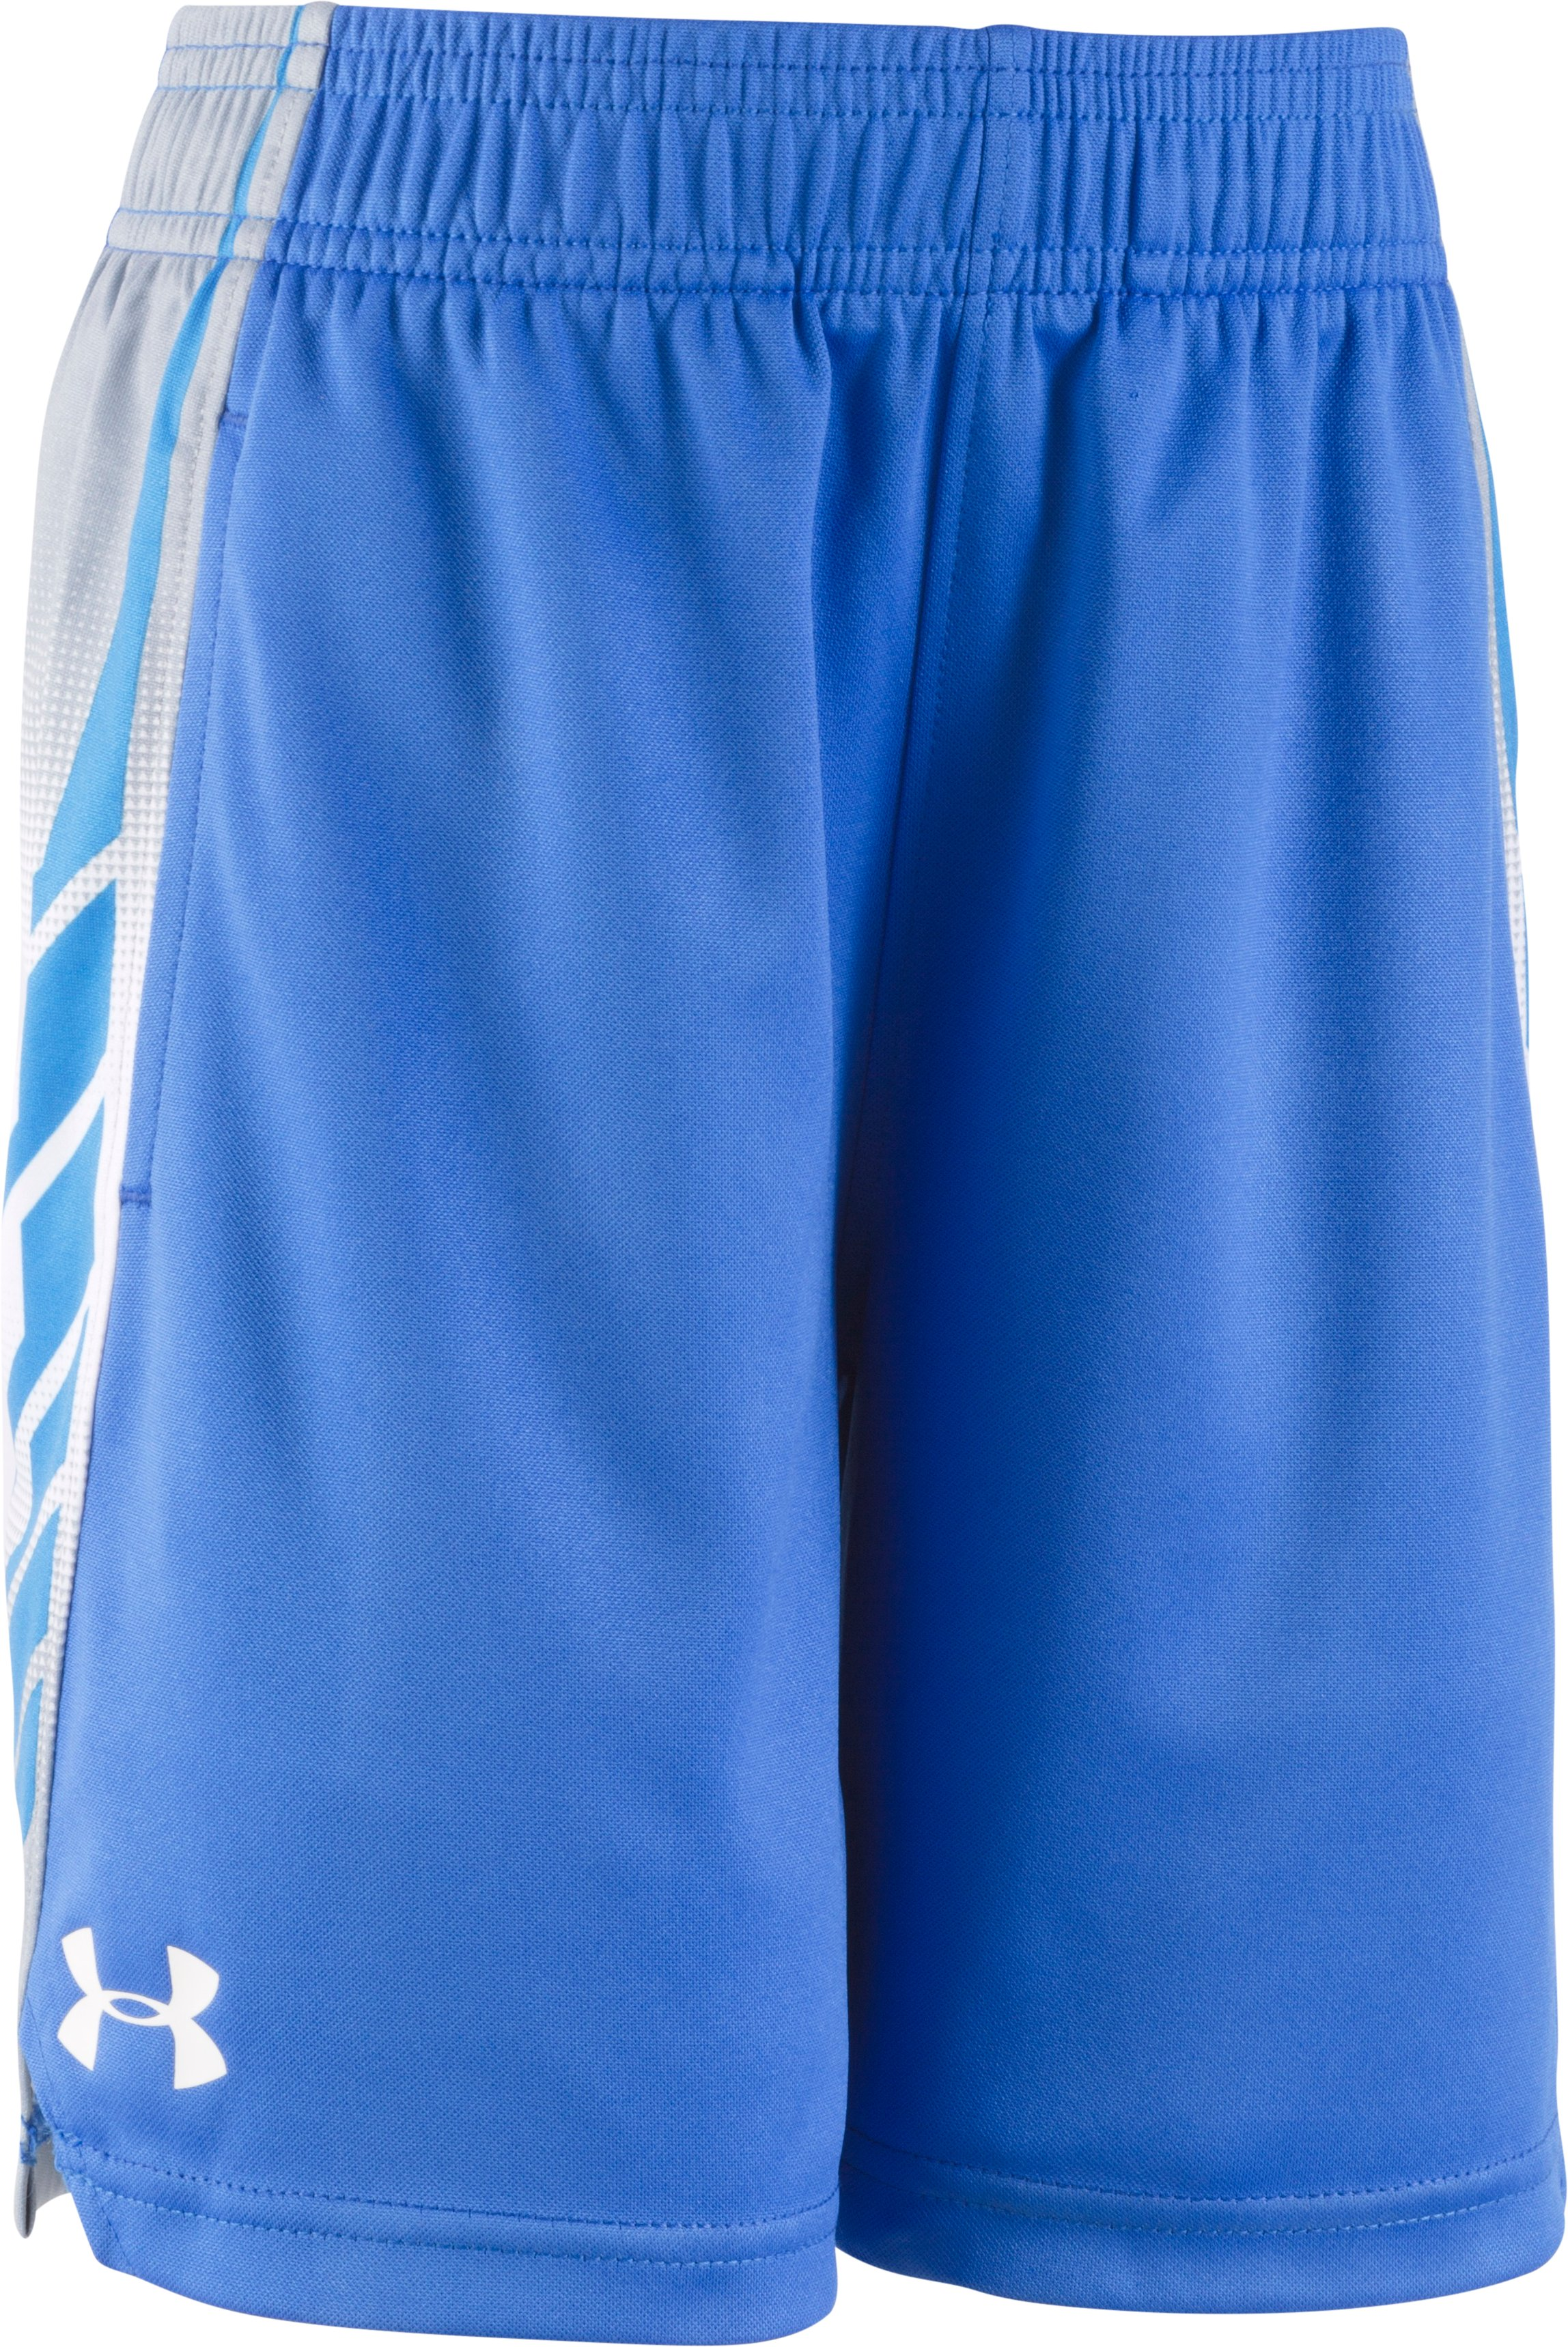 Boys' Toddler UA Select Shorts, ULTRA BLUE, Laydown